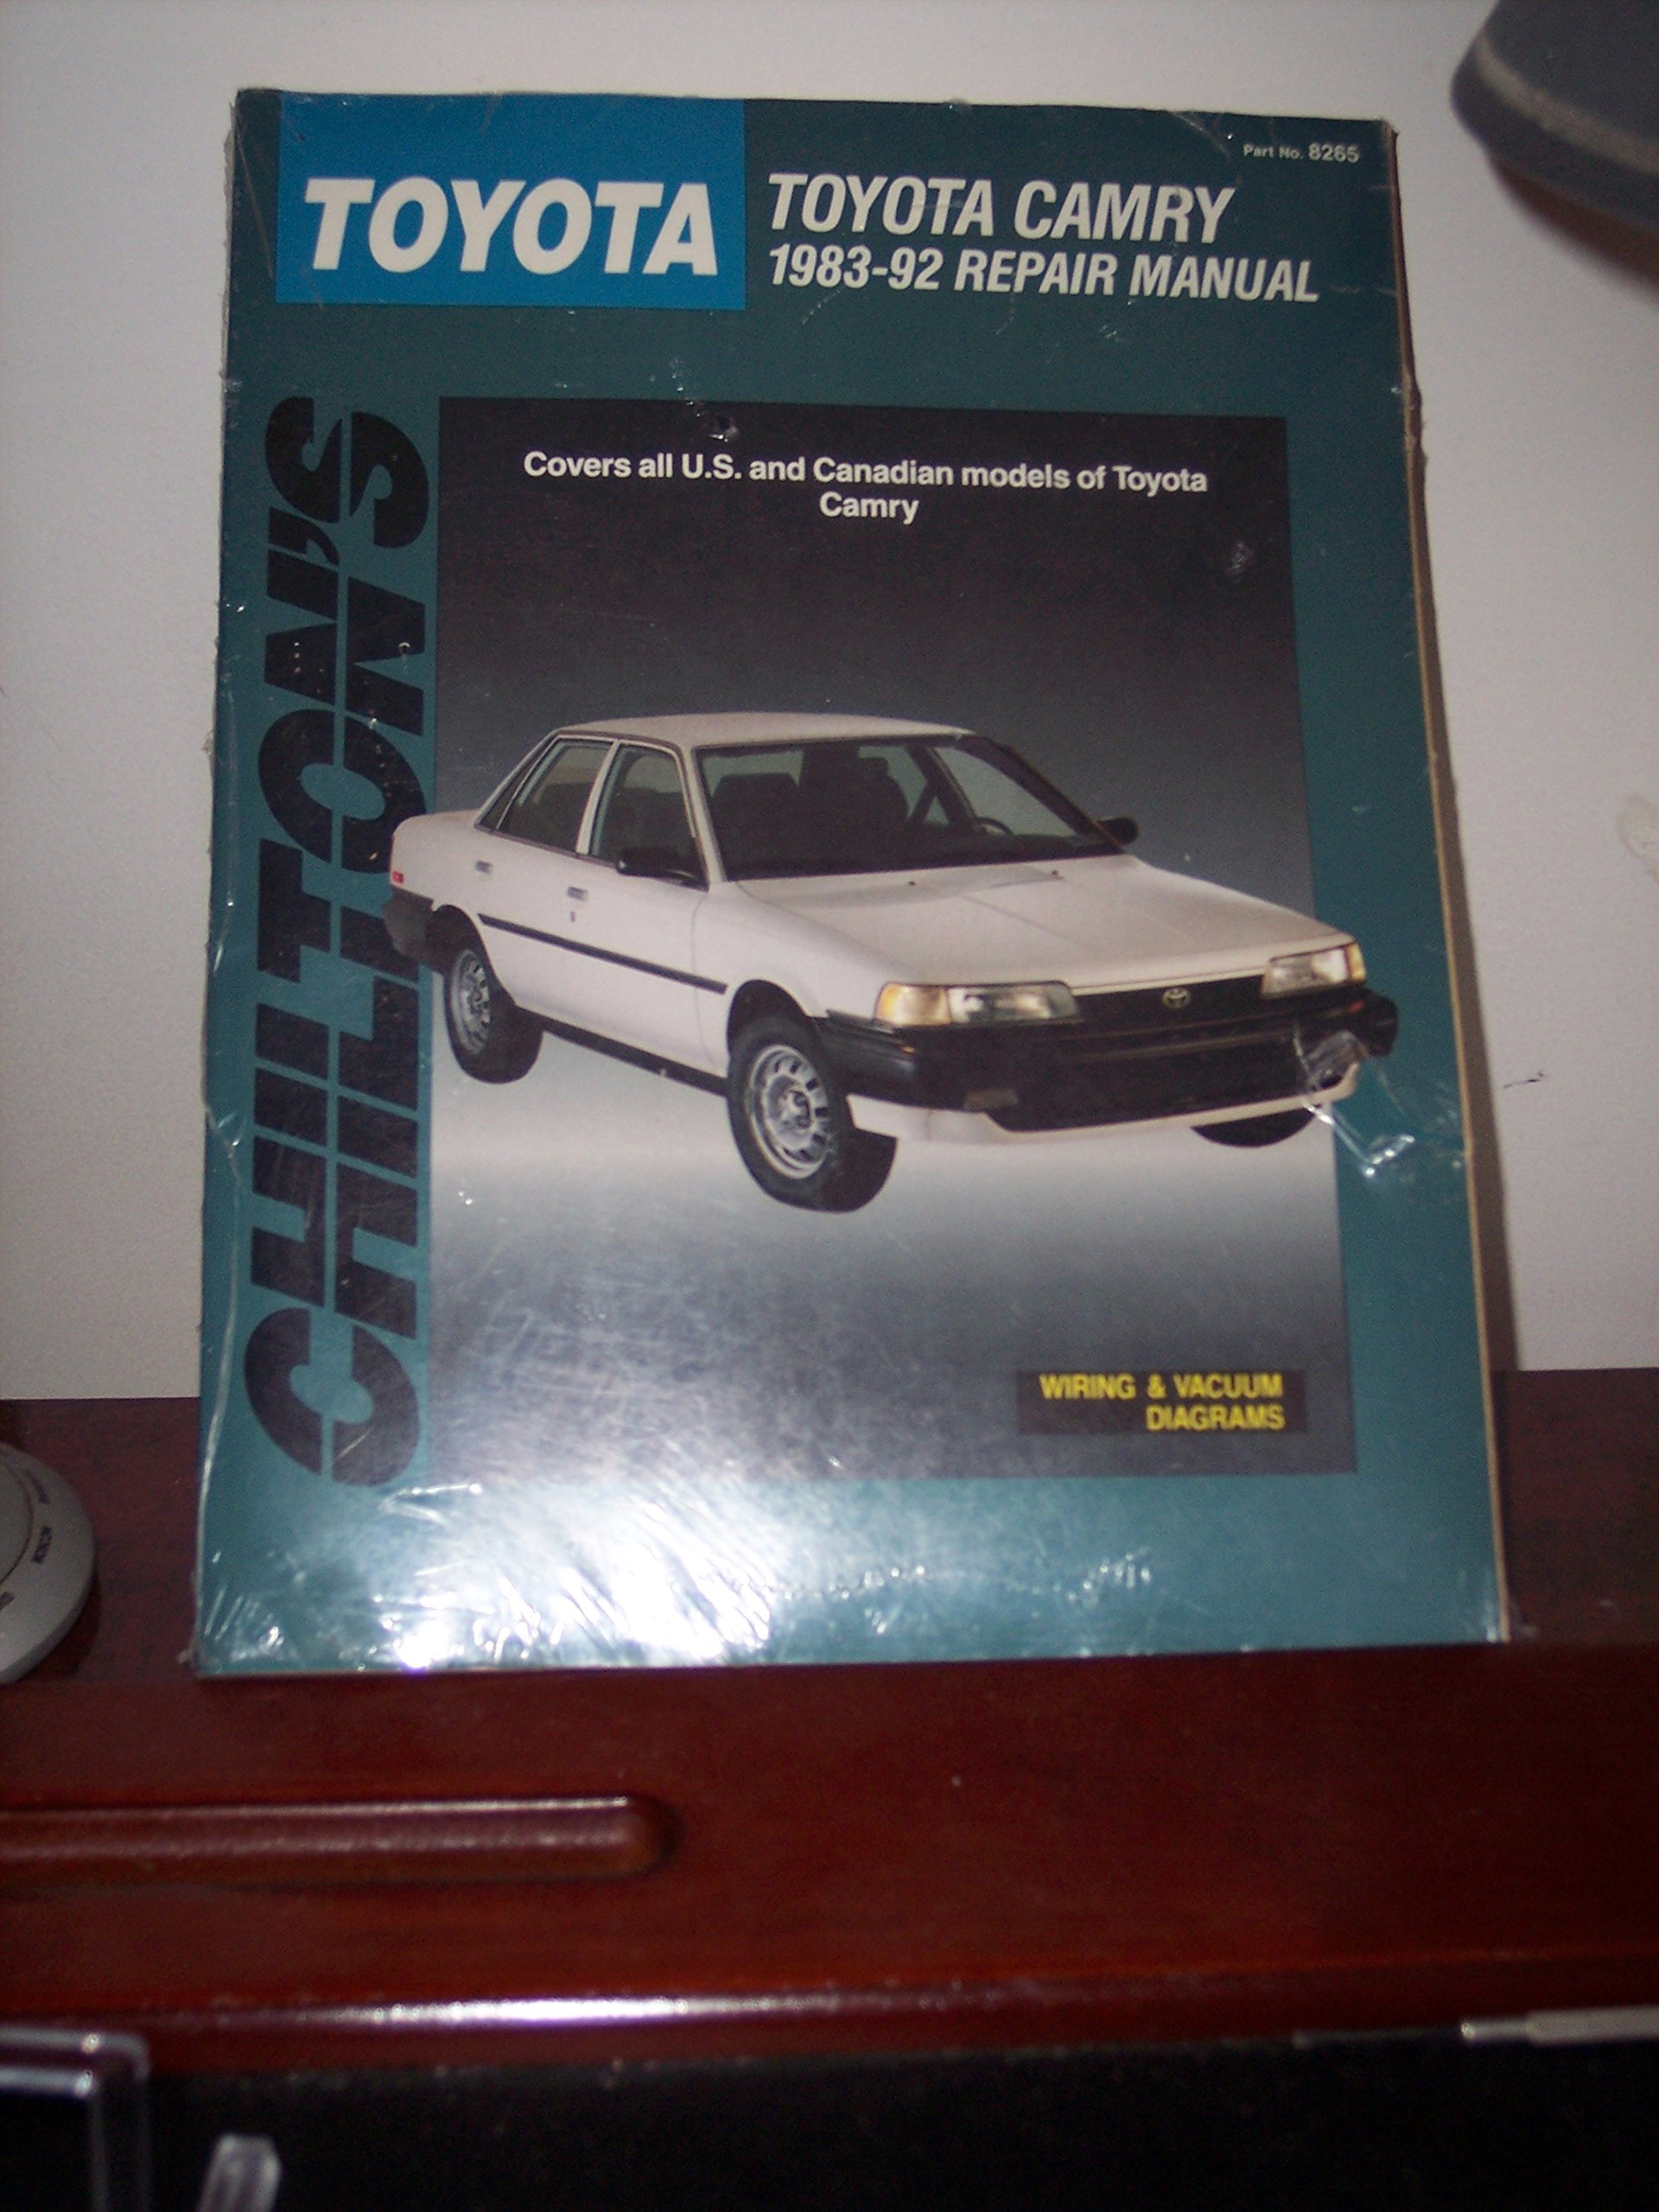 Chiltons Toyota Camry 1983 92 Repair Manual 1992 Electrical Wiring Diagram Guide Handbook Total Car Care Dean F Morgantini 9780801982651 Books